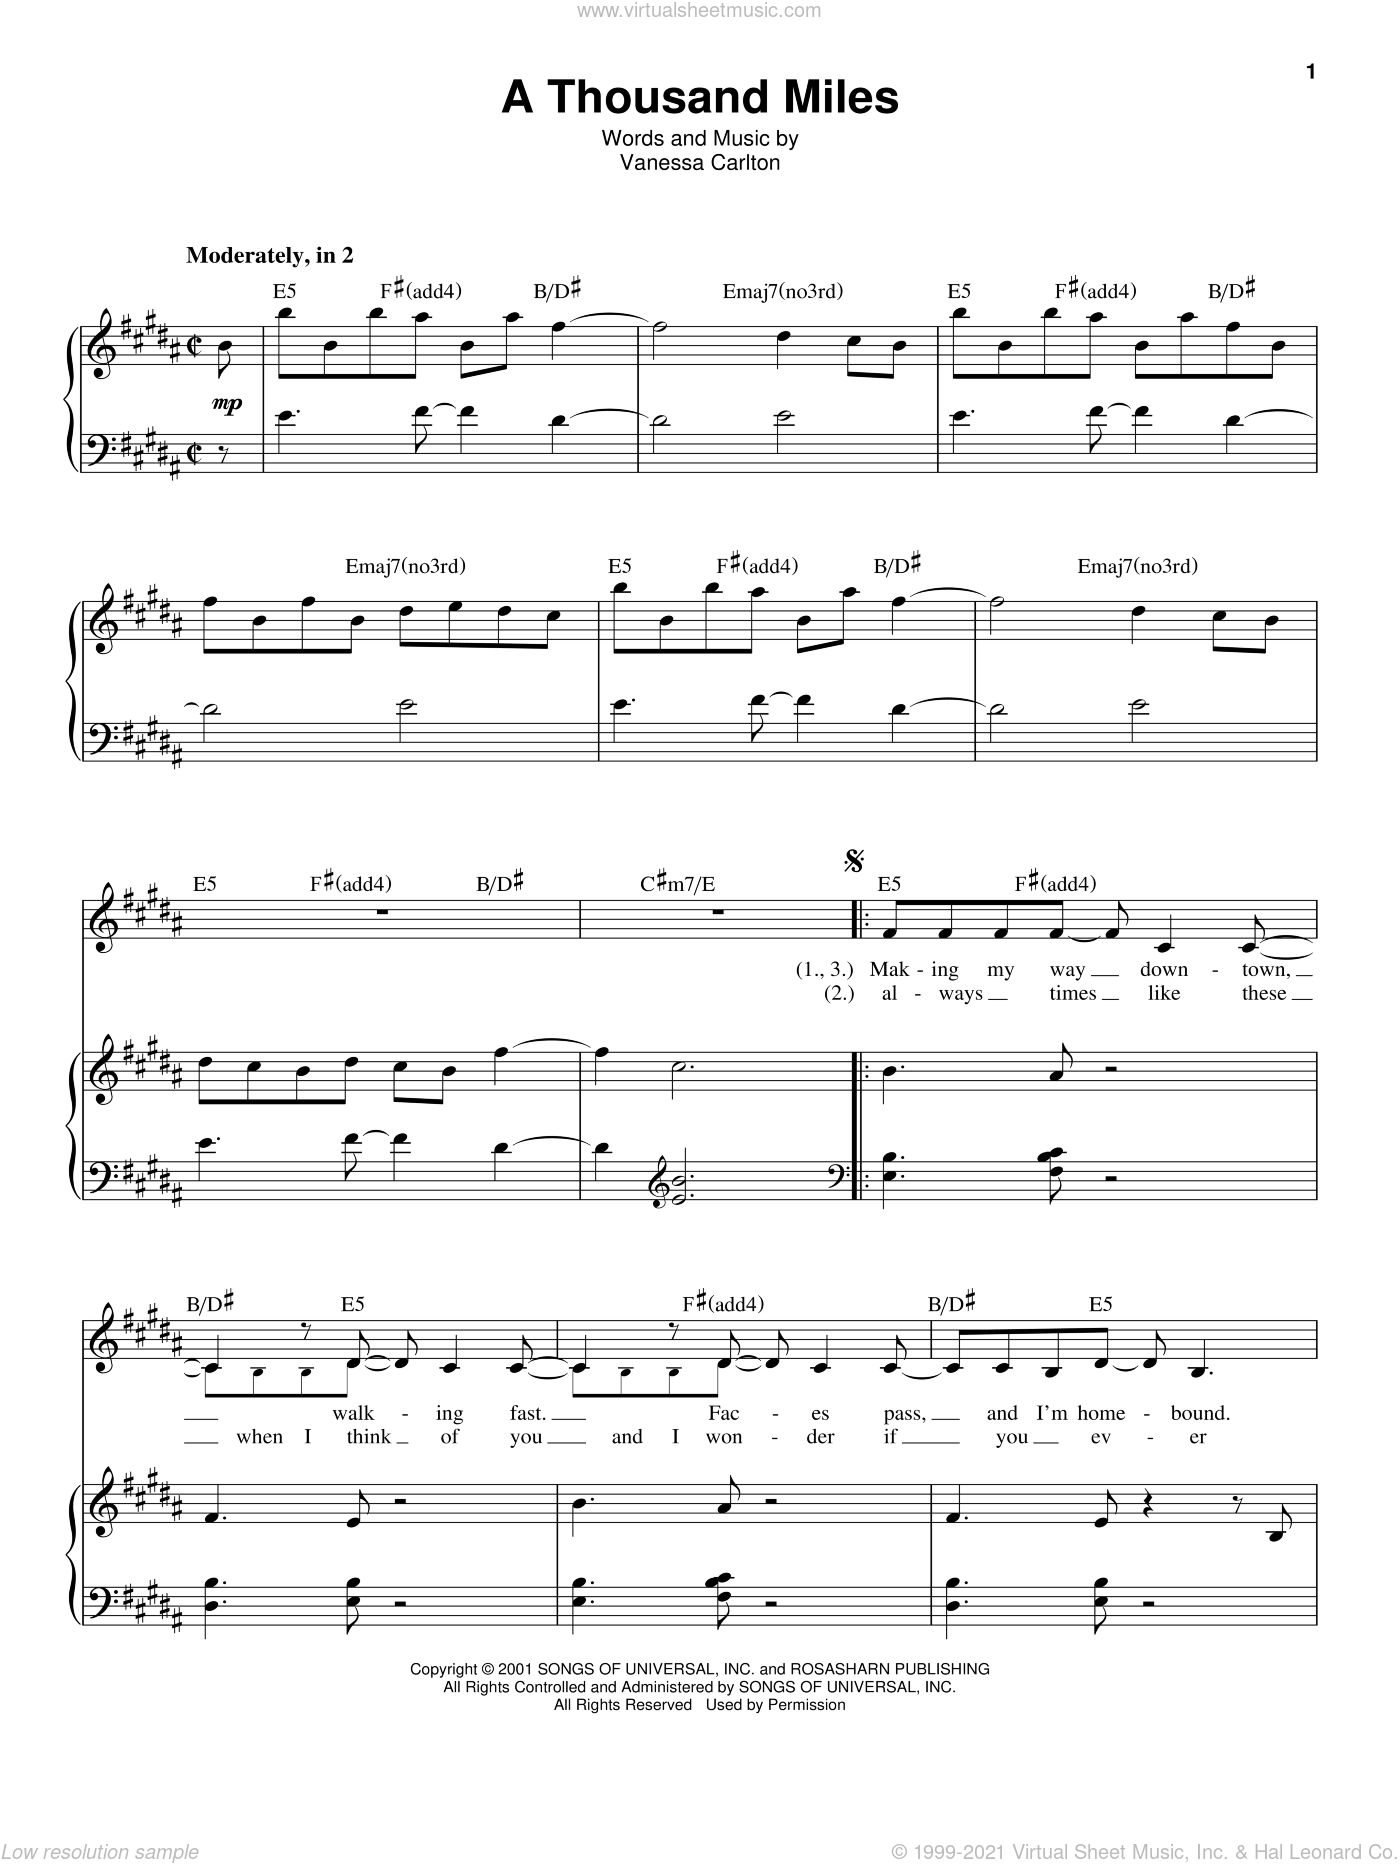 A Thousand Miles sheet music for voice and piano by Vanessa Carlton, intermediate skill level